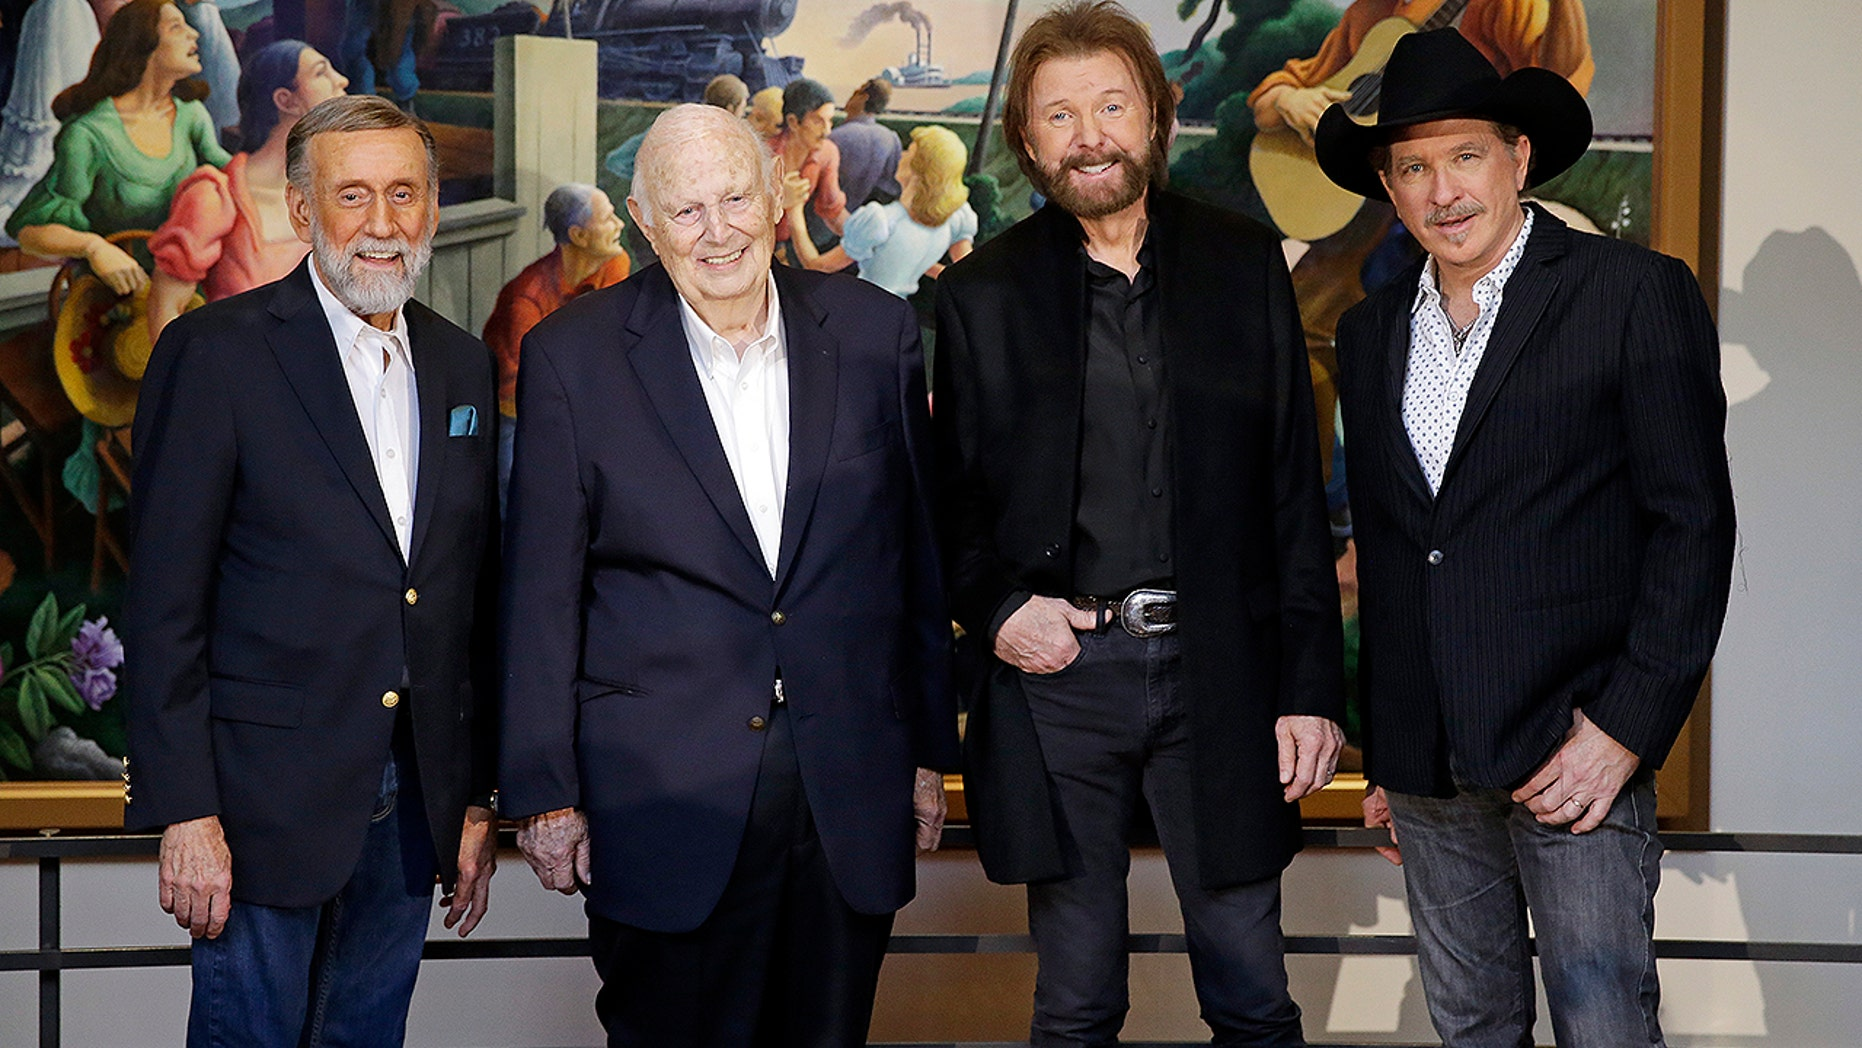 Ray Stevens, Jerry Bradley, Ronnie Dunn, and Kix Brooks pose at a press conference announcing that they will be inducted into the Country Music Hall of Fame Monday, March 18, 2019, in Nashville, Tenn.